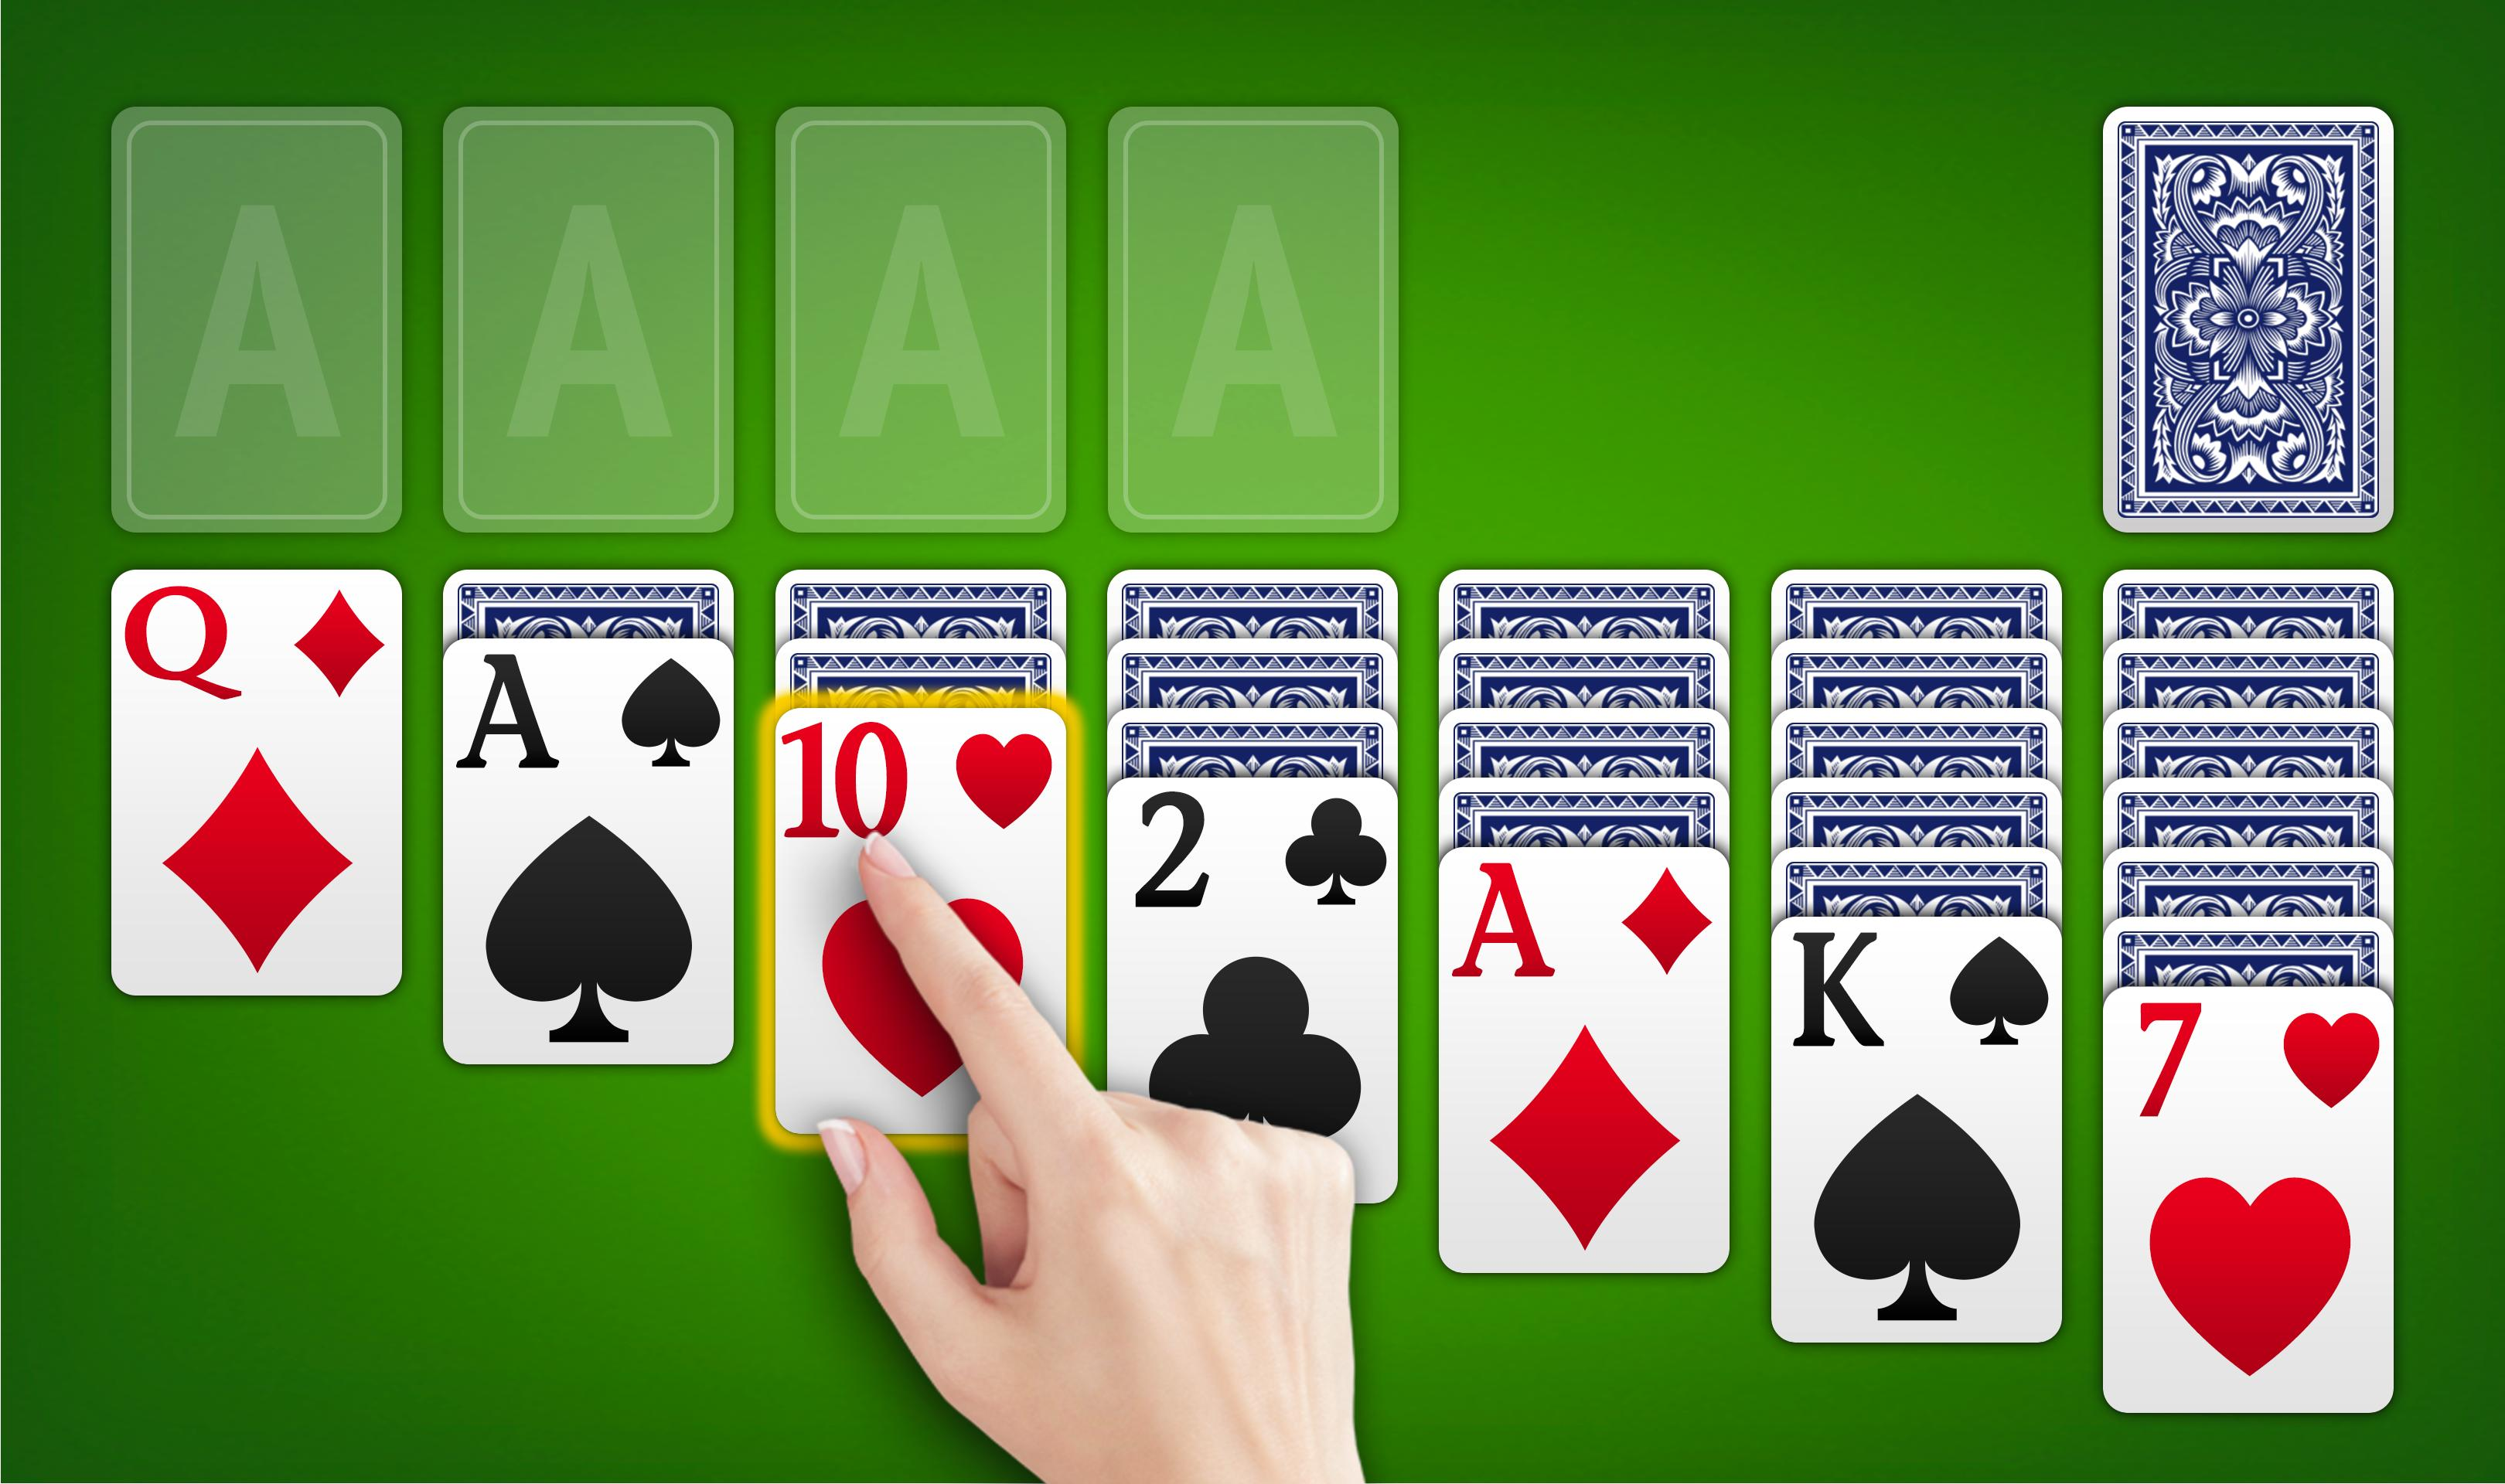 Solitaire - Free Classic Solitaire Card Games 1.8.5 Screenshot 1